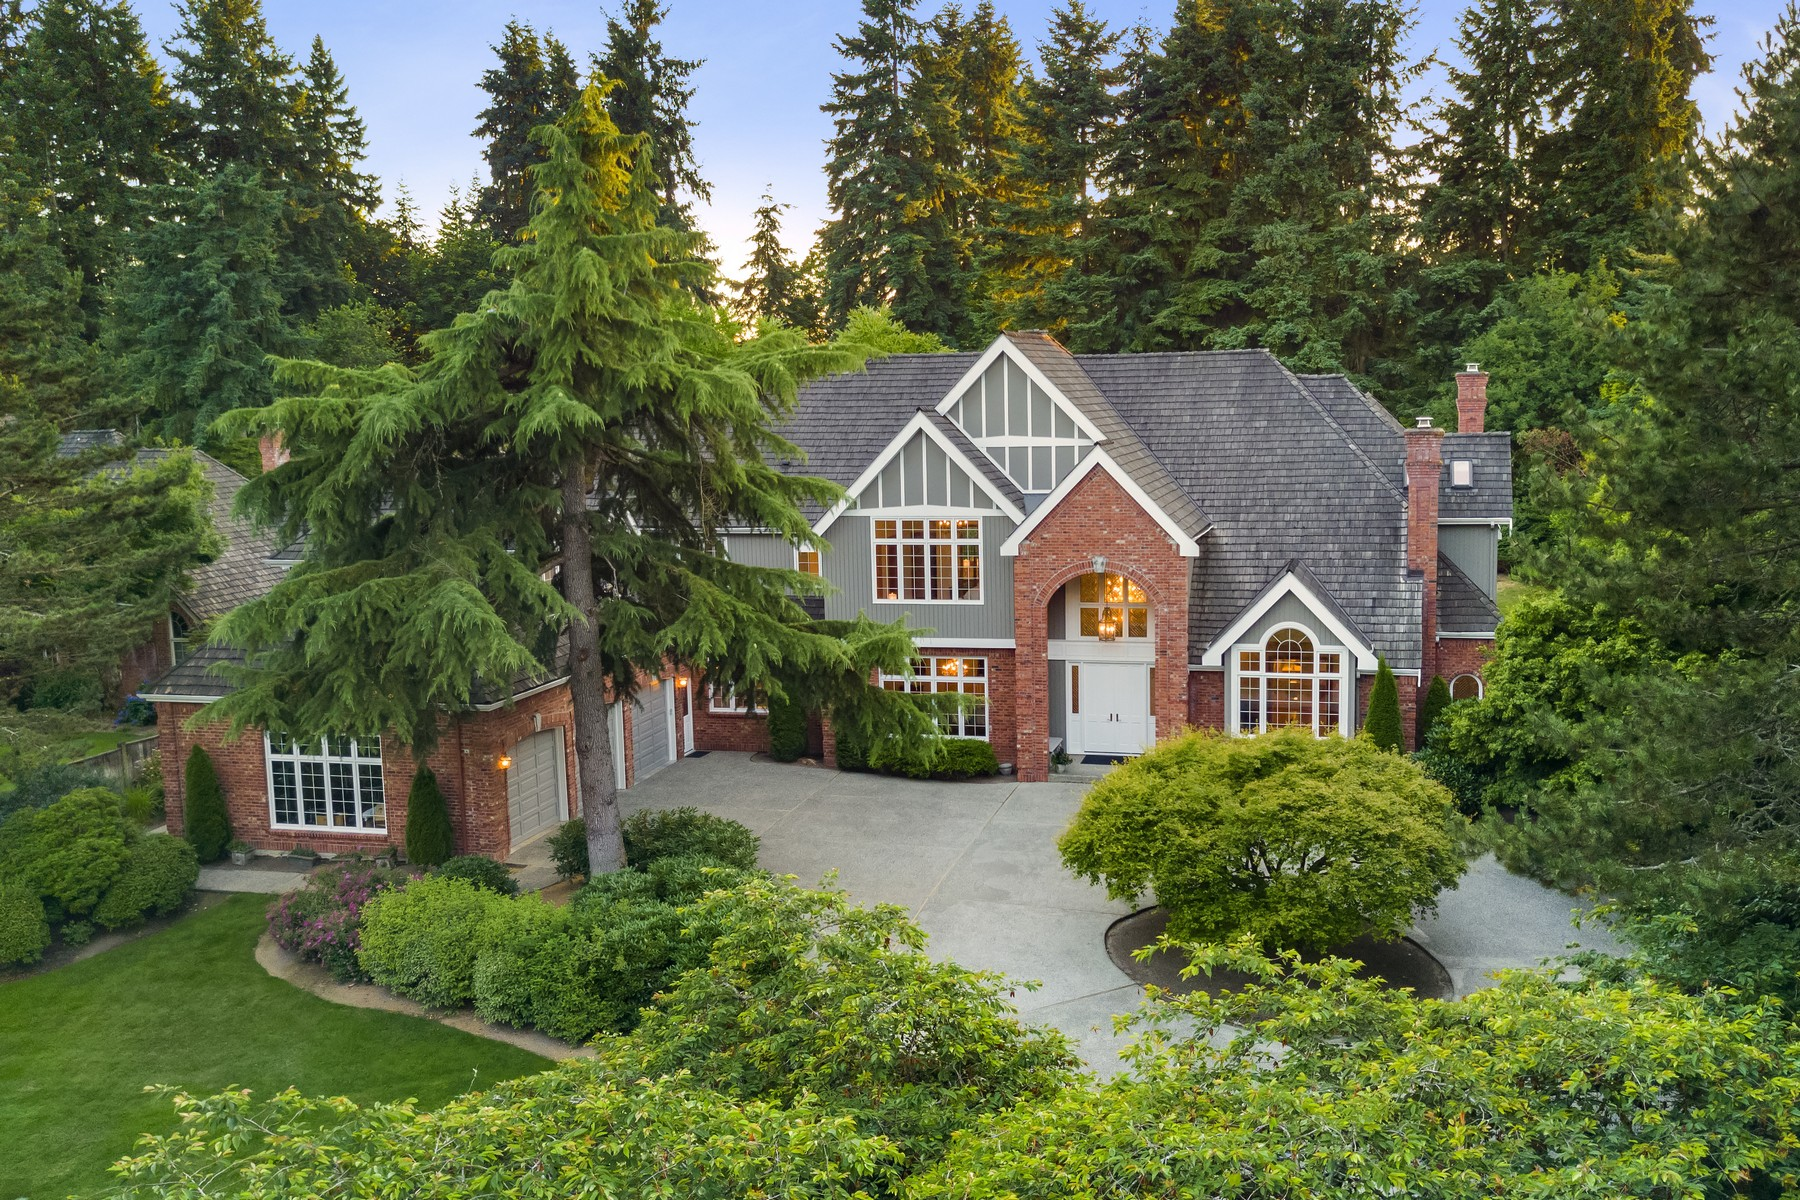 Single Family Home for Sale at Architecturally Distinct Hollywood Hills Estate 15430 NE 152nd Place Woodinville, Washington 98072 United States